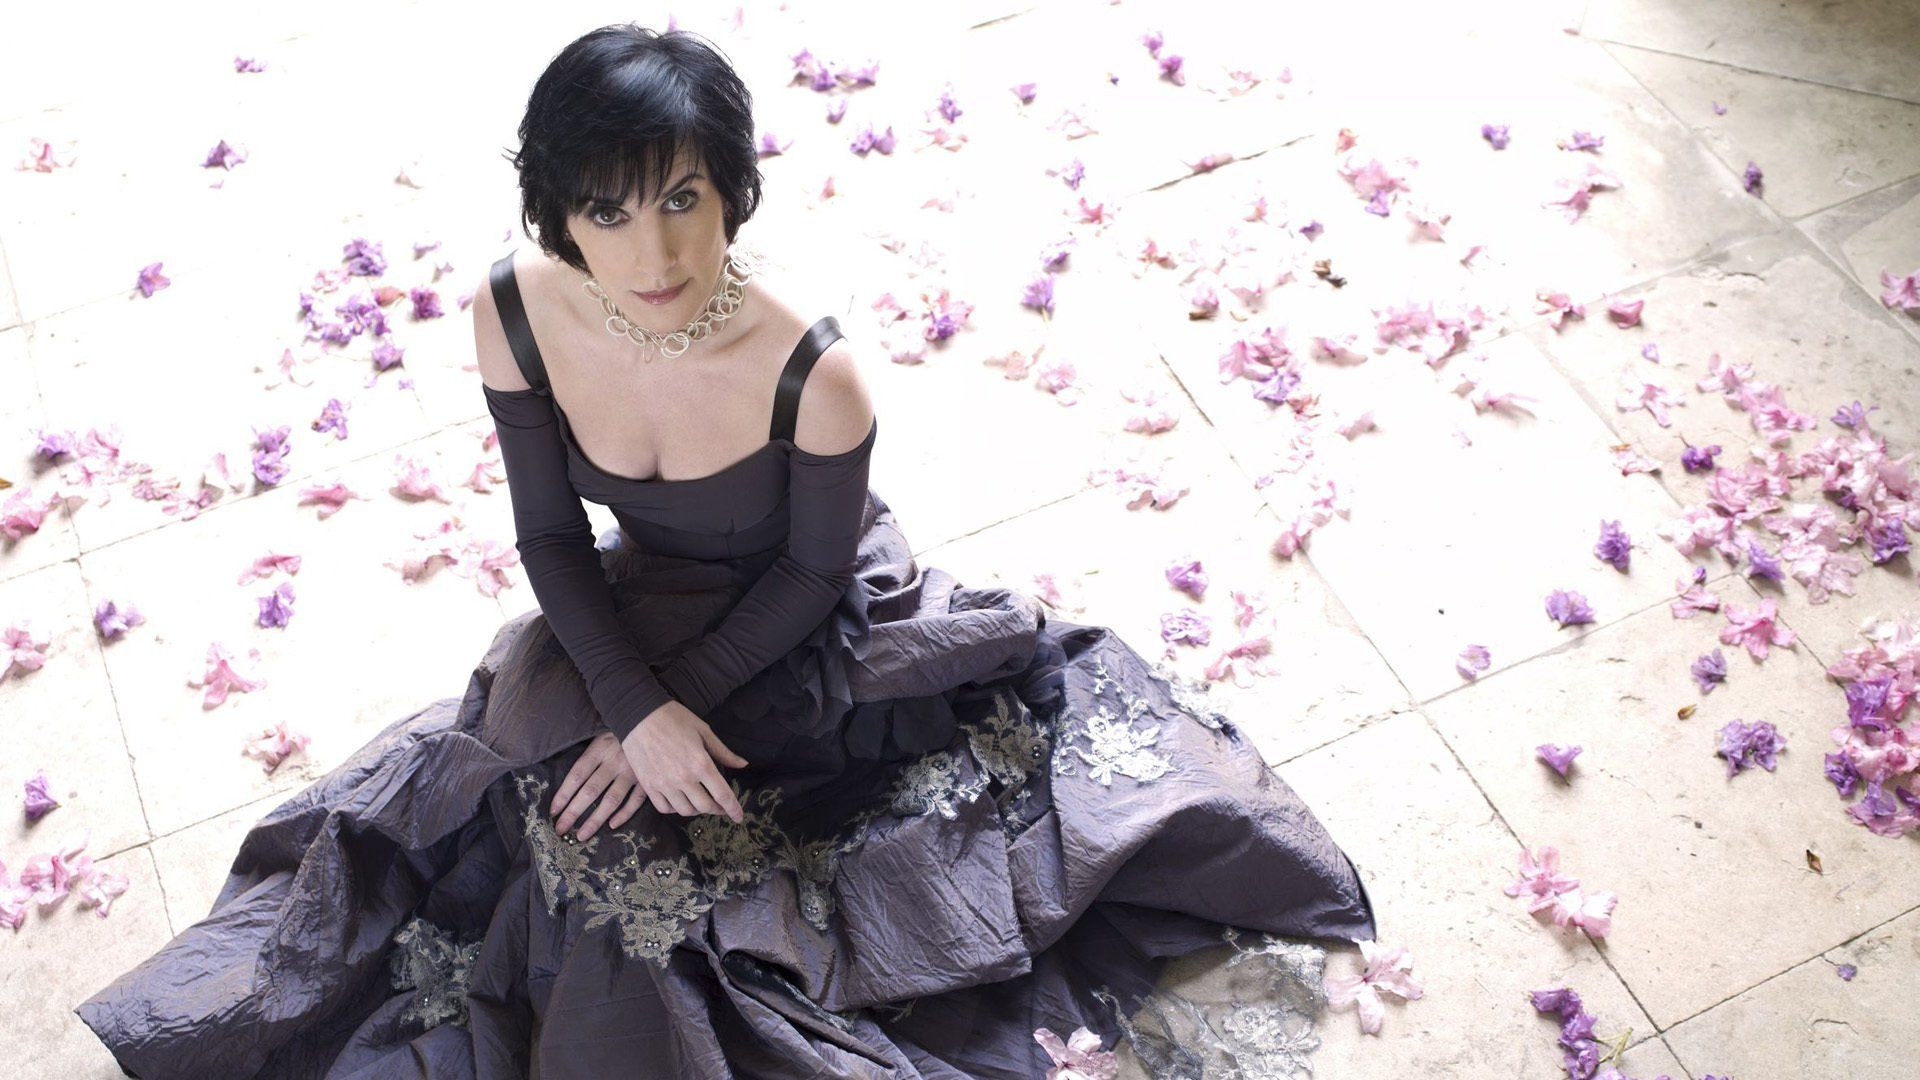 8 Dolores O' Riordan HD Wallpapers | Backgrounds - Wallpaper Abyss